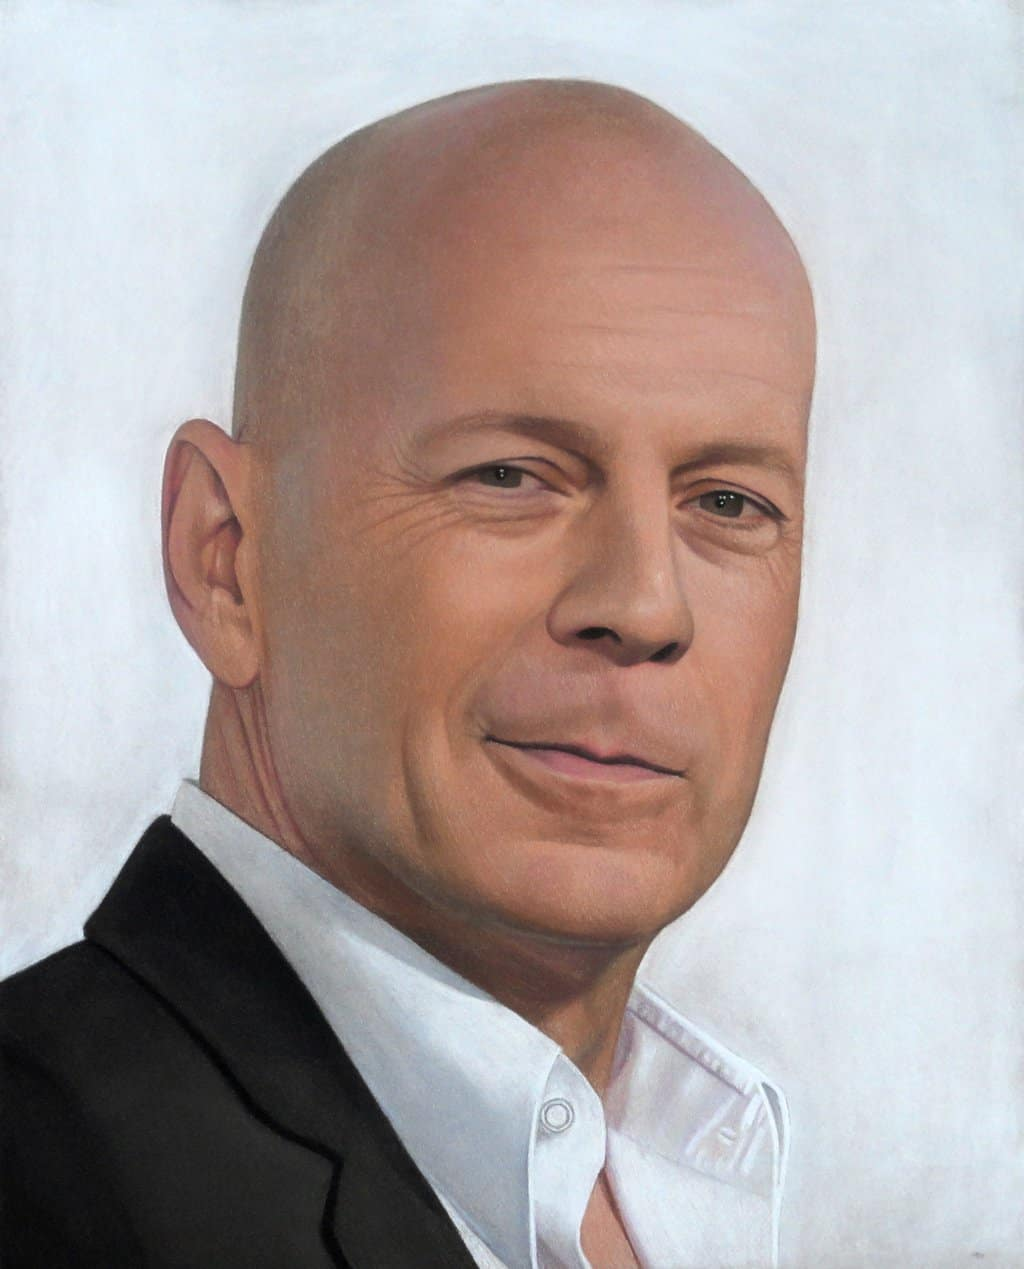 Bruce Willis: Latest News, Pictures & Videos - HELLO!